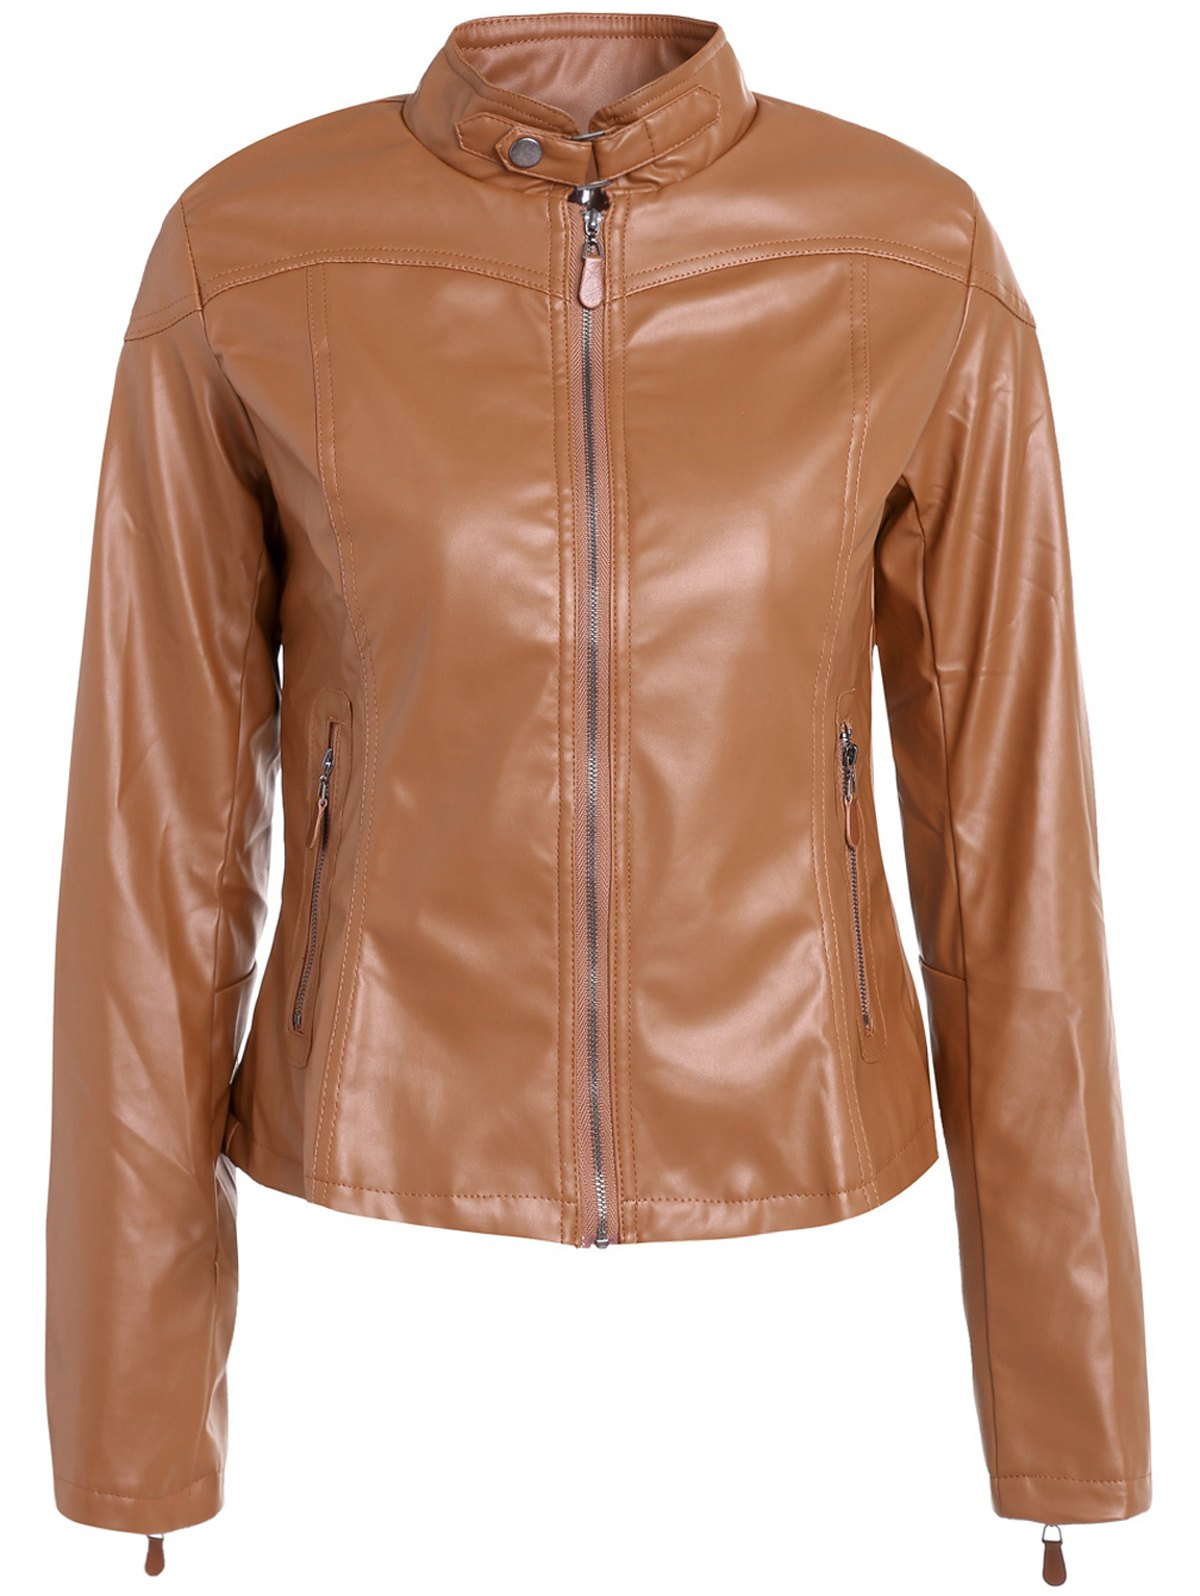 Store Chic Stand Collar Long Sleeve Zipper Design Faux Leather Women's Jacket